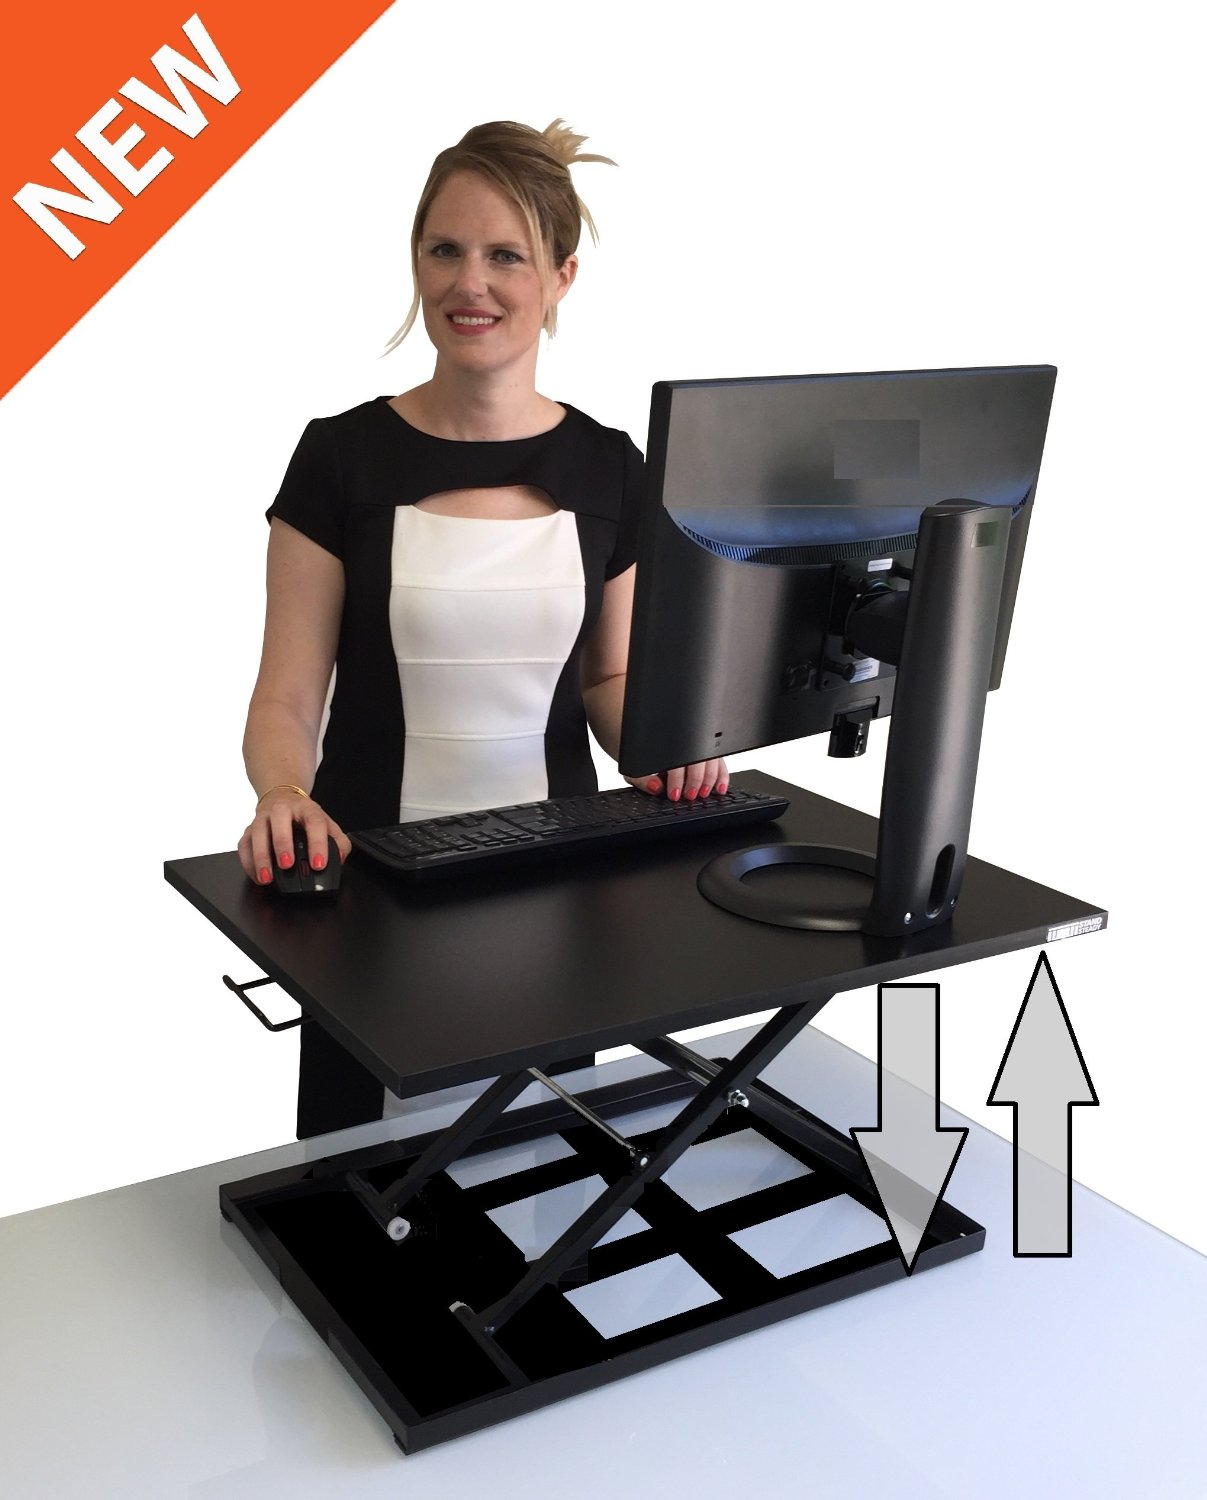 Sit Stand Chair Amazon Patio Cushion Bought A Up Desk No More Back Pain From 12 Hours